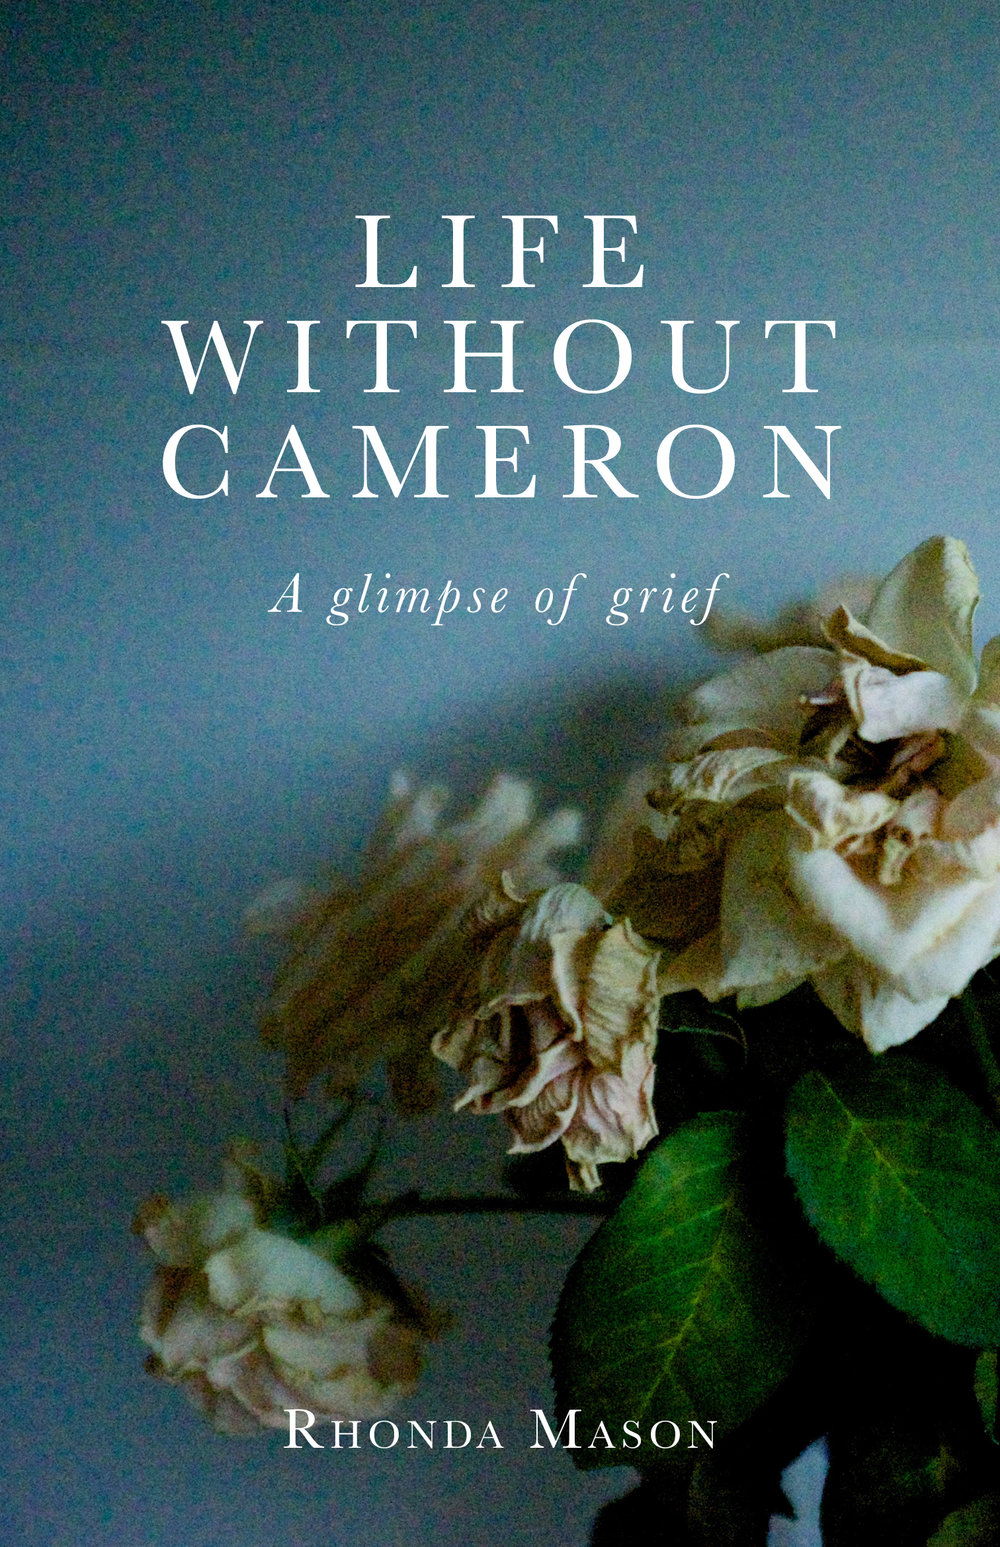 Life Without Cameron, by Rhonda Mason